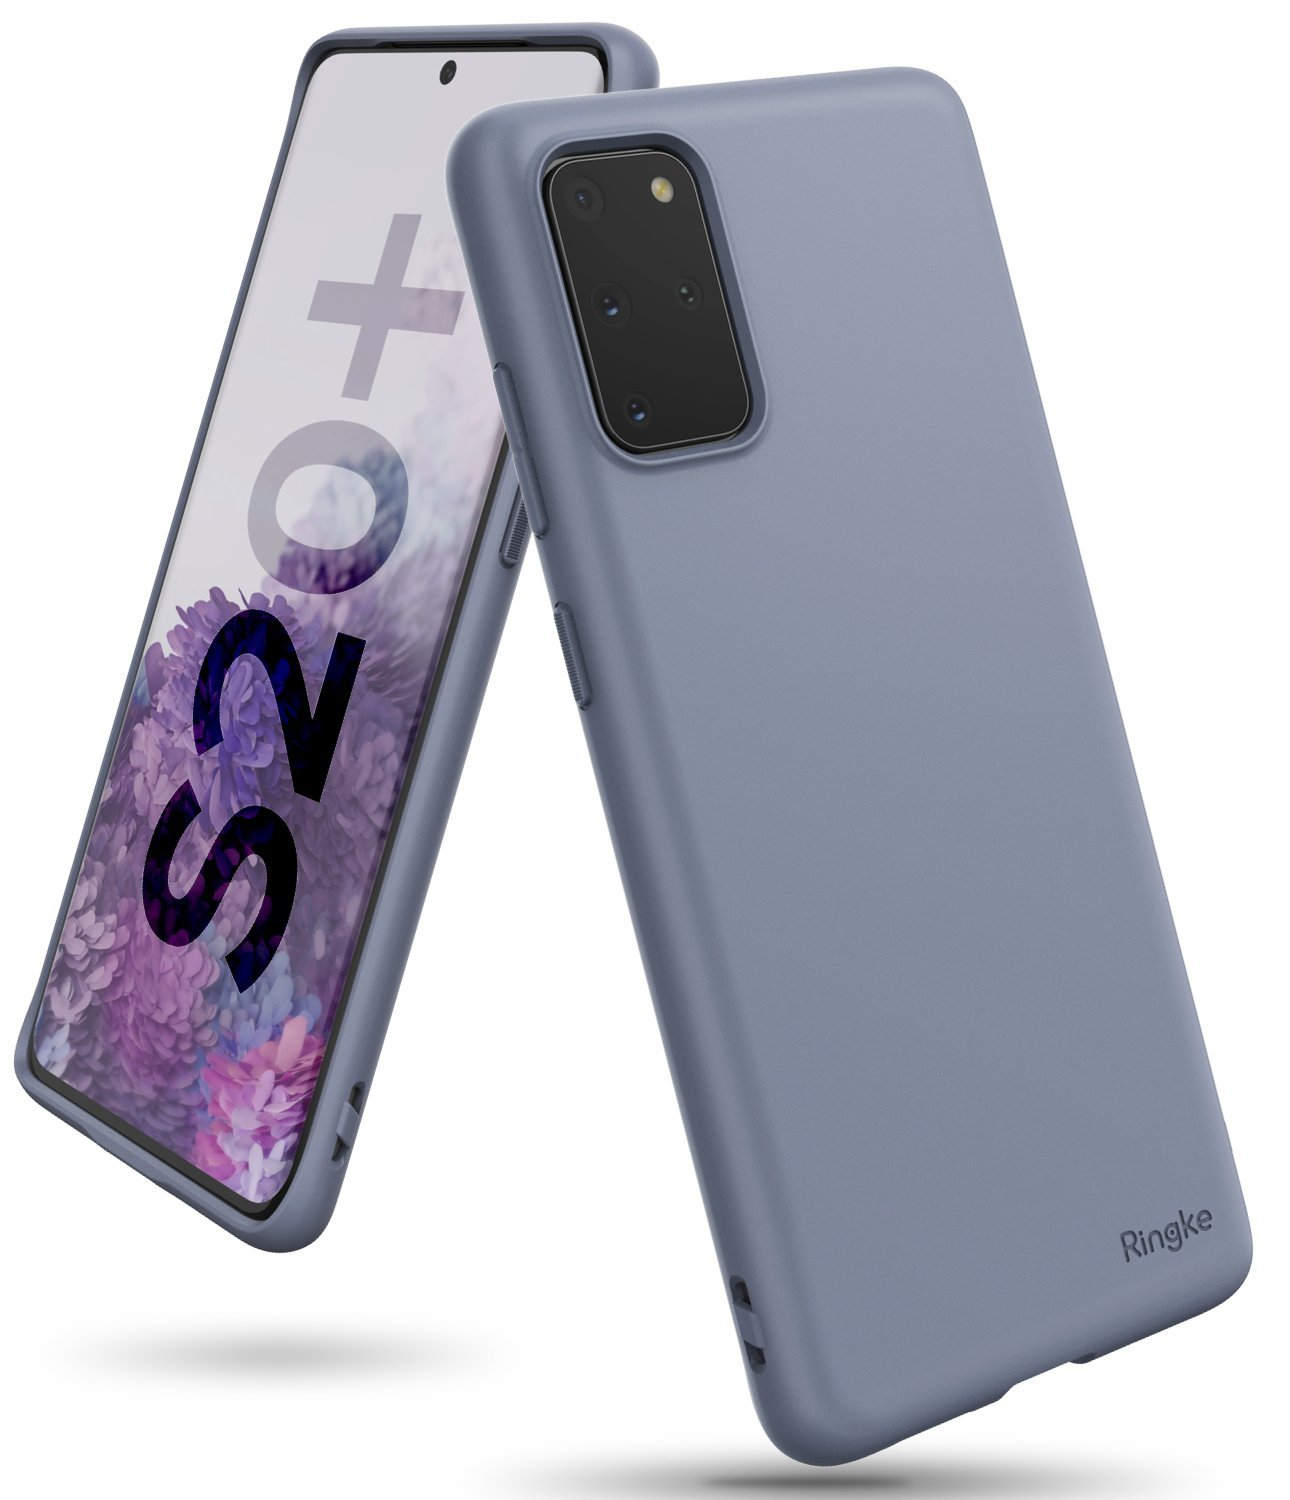 Galaxy S20 plus Case ringke Air-S, lavender gray, main image